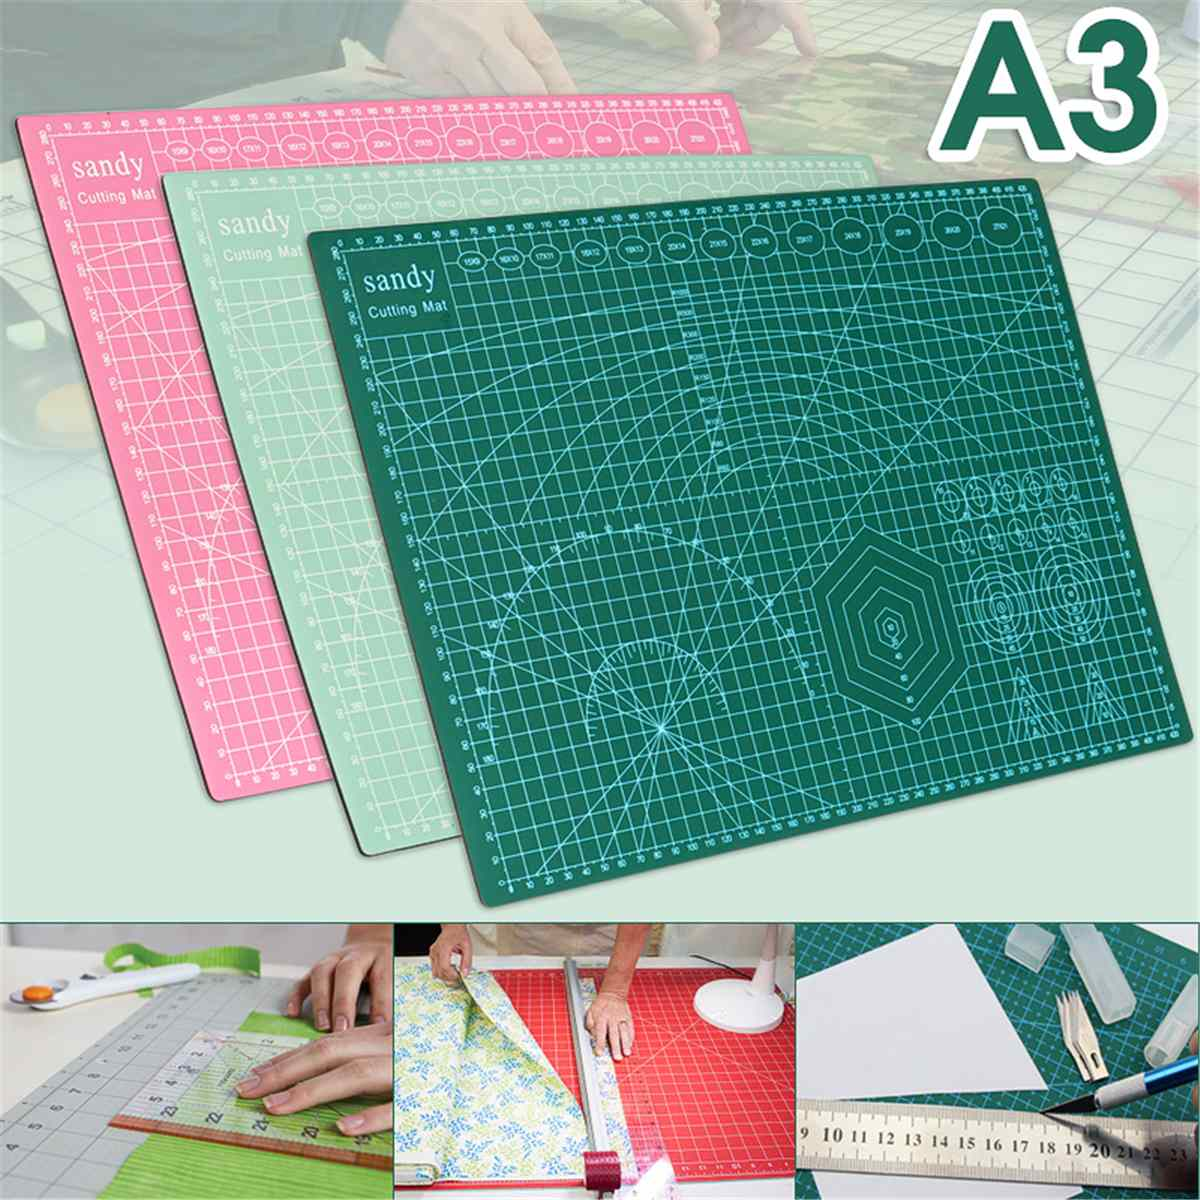 A3 Grid Lines Cutting Craft Mat Board Self Healing Non Slip Printed Scale Plate Knife Quality Cutting Scrapbooking Office Rated A3 Grid Lines Cutting Craft Mat Board Self Healing Non Slip Printed Scale Plate Knife Quality Cutting Scrapbooking Office Rated